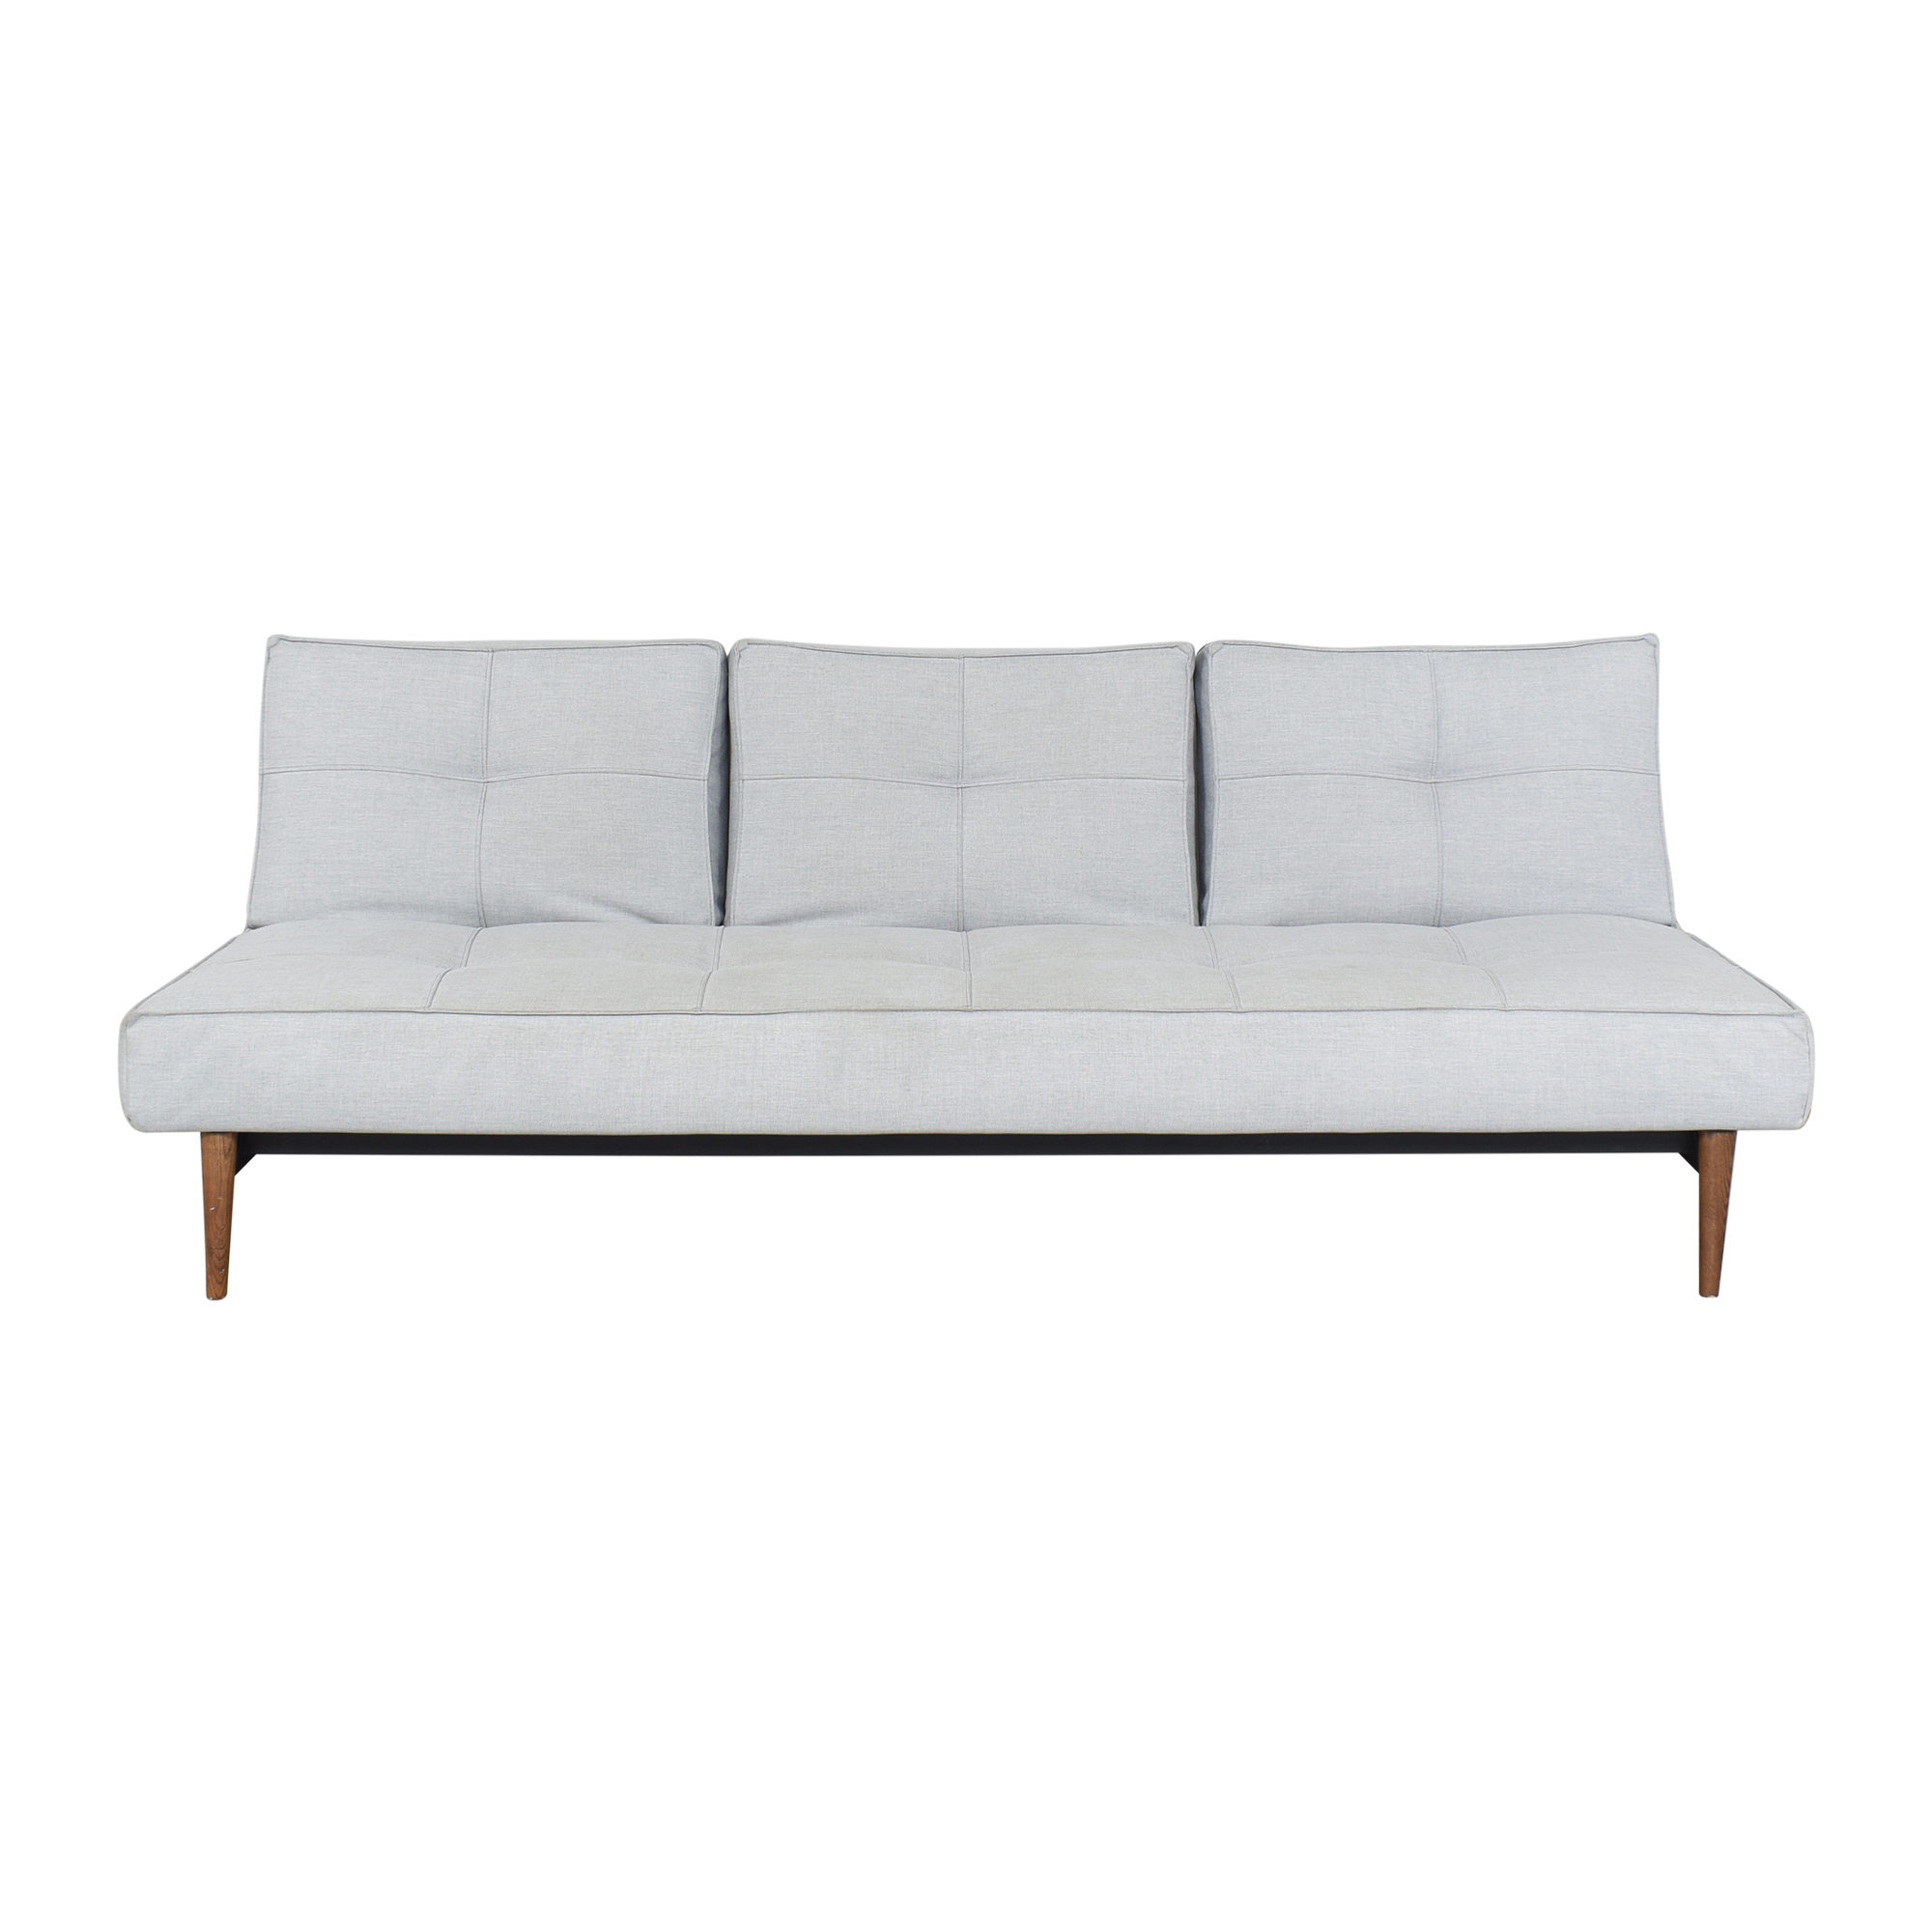 Innovation Living Innovation Living Convertible Sofa Bed coupon